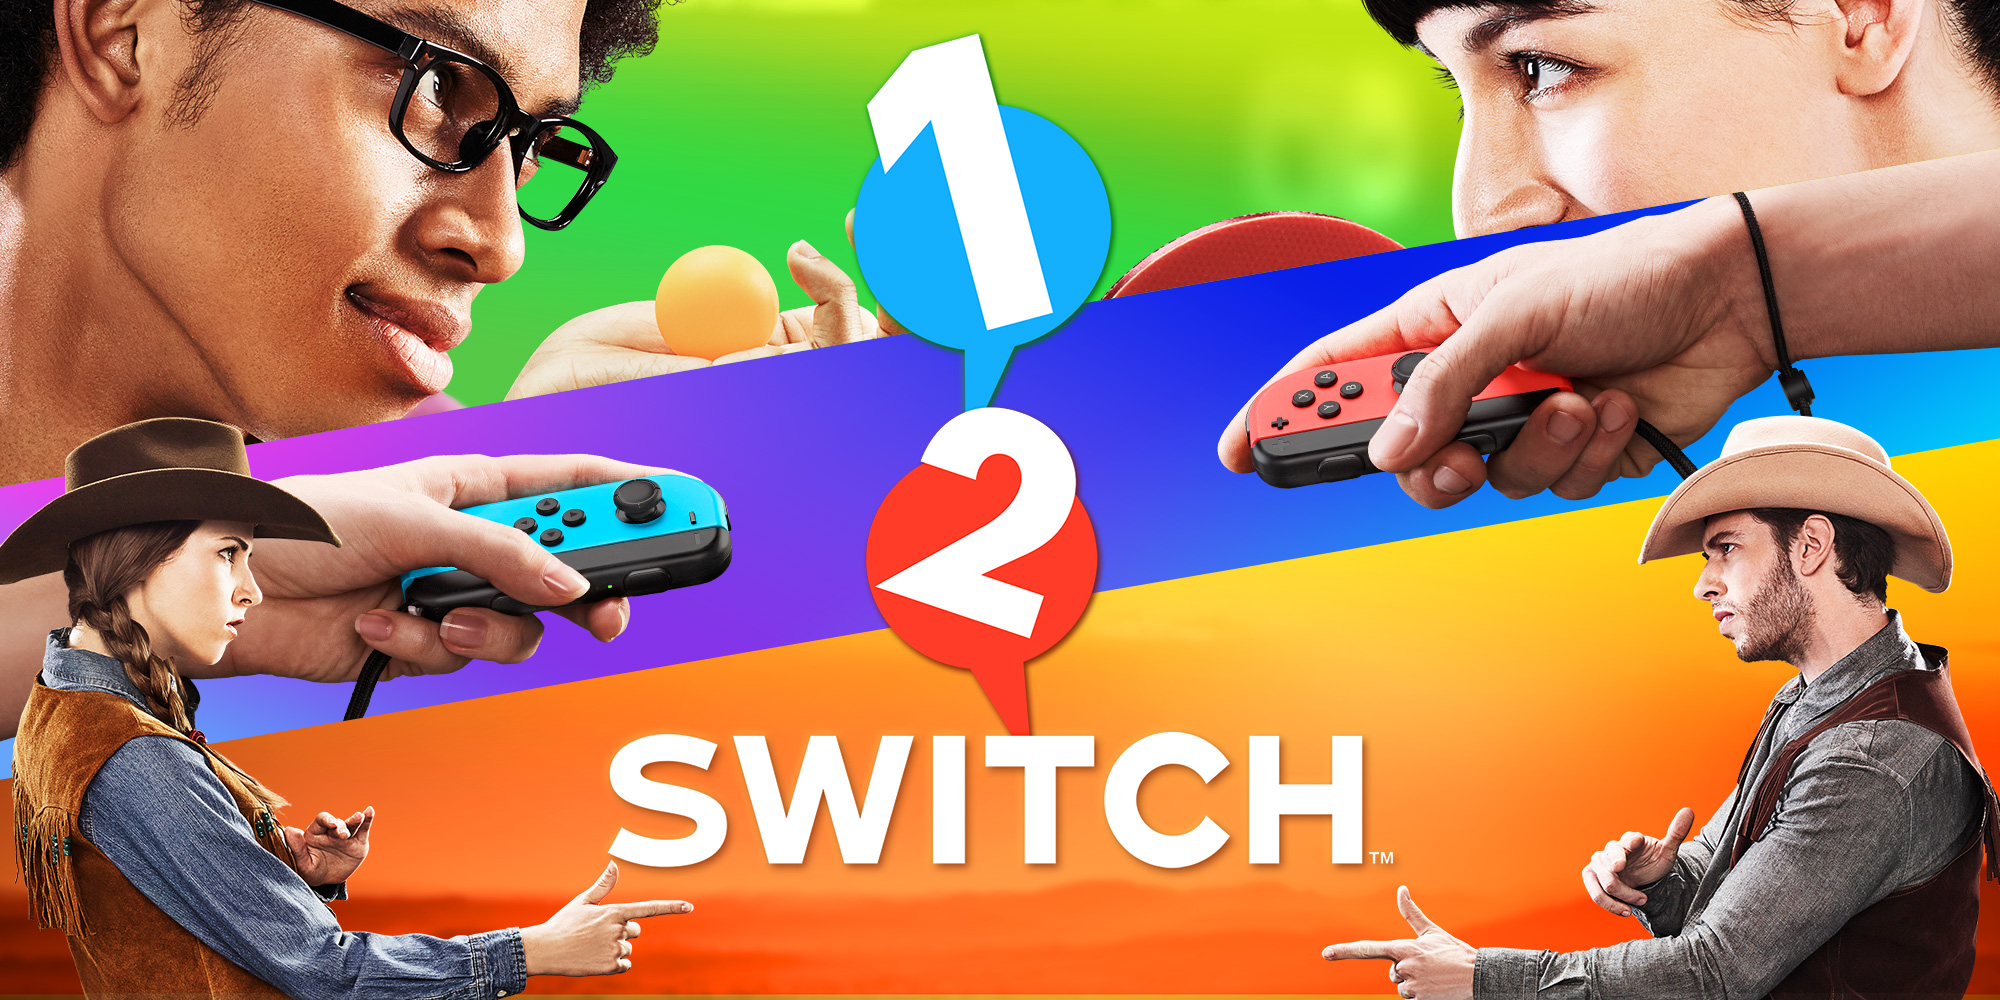 1-2-Switch is not the Next Wii Sports